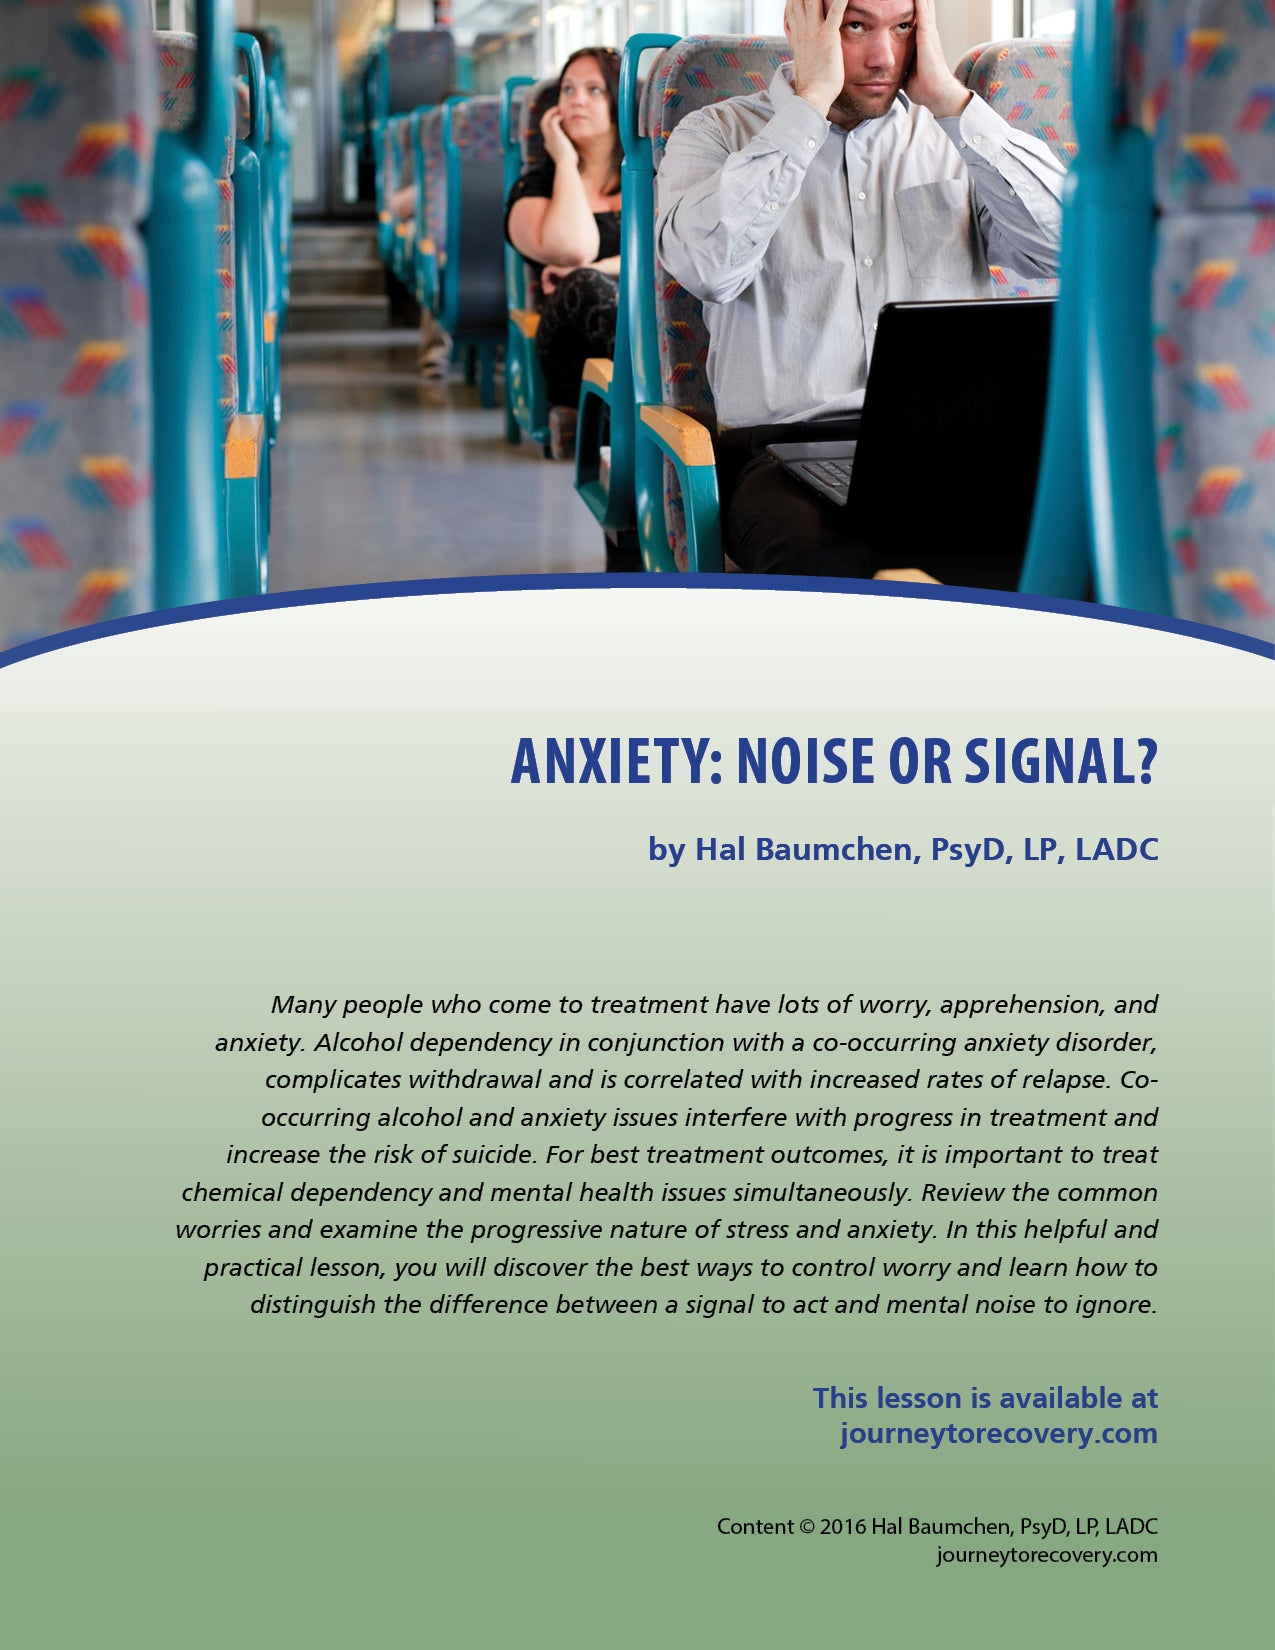 Anxiety: Noise or Signal?